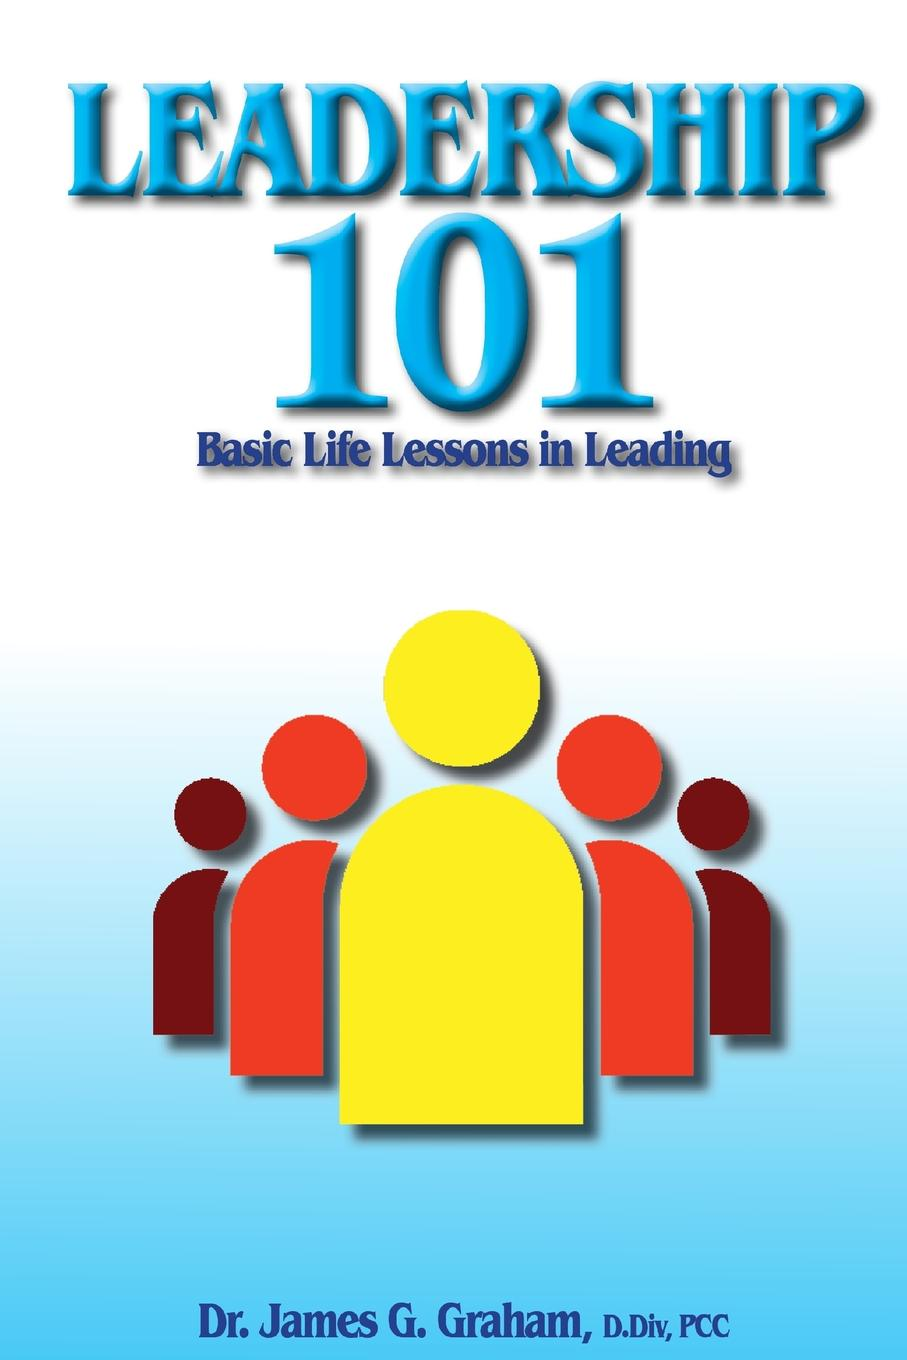 DR. JAMES G. GRAHAM LEADERSHIP 101 - Basic Lessons in Leading bill george seven lessons for leading in crisis